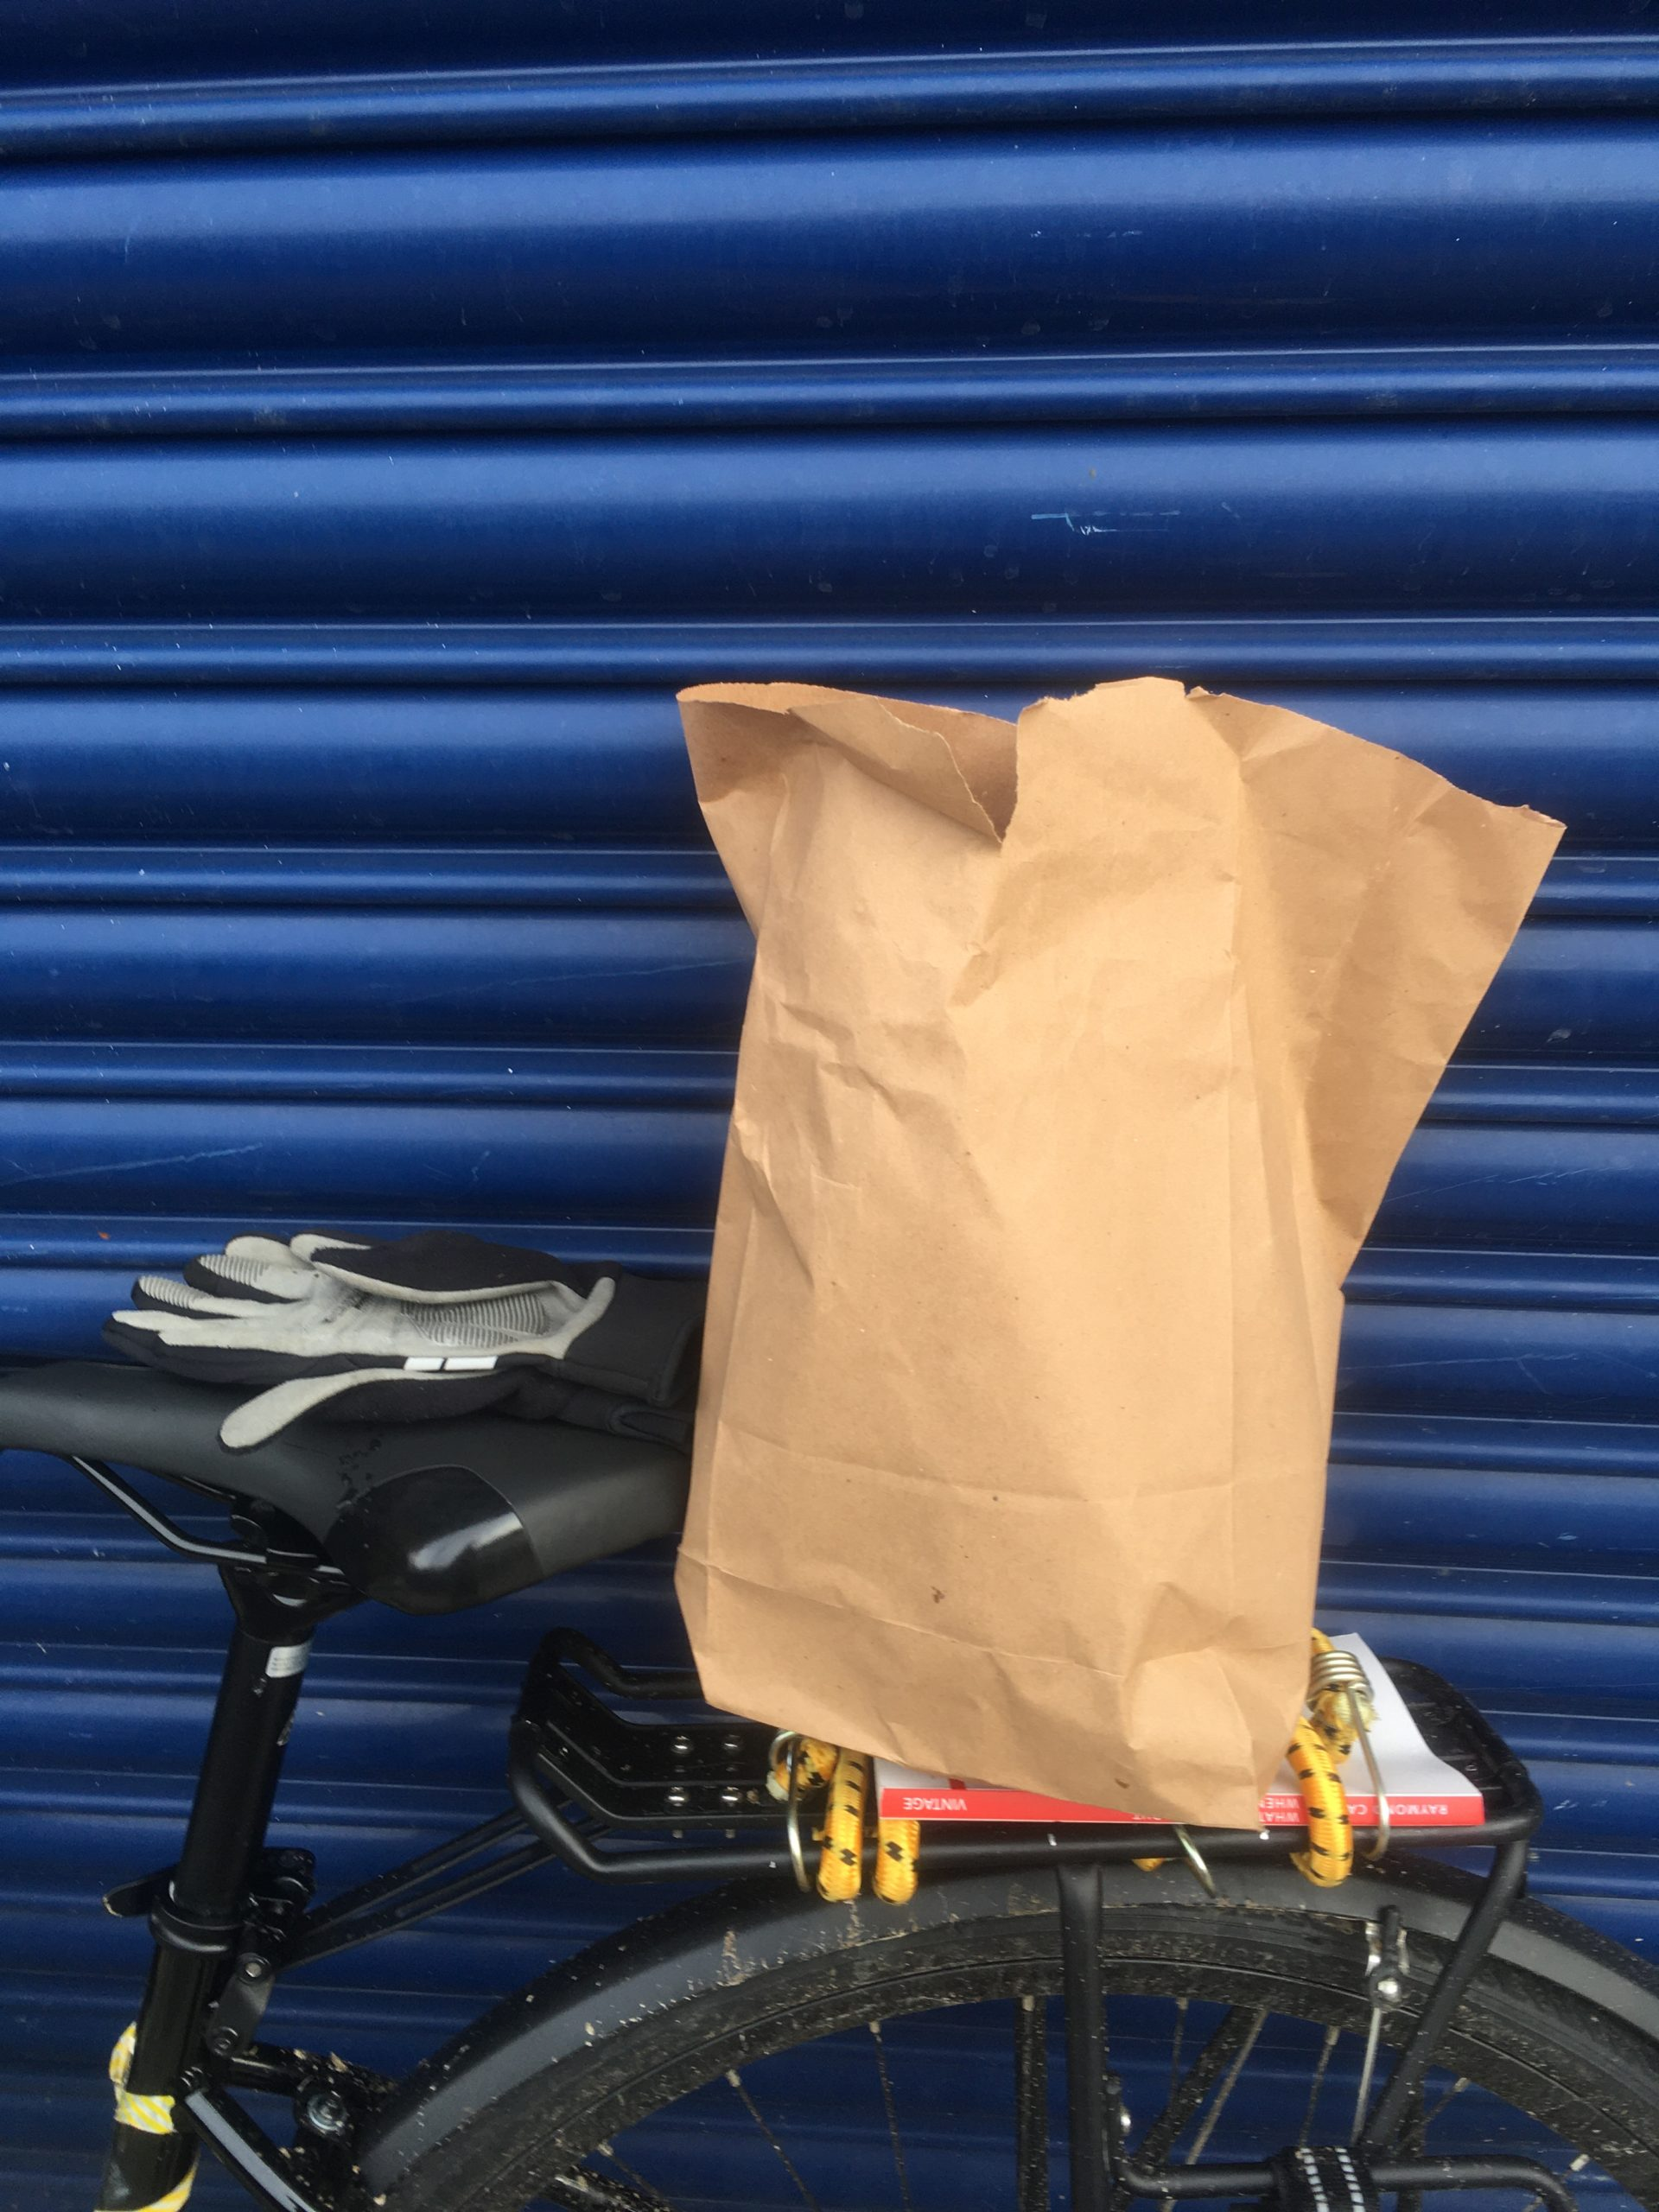 Bag of croissants on the back of my bike